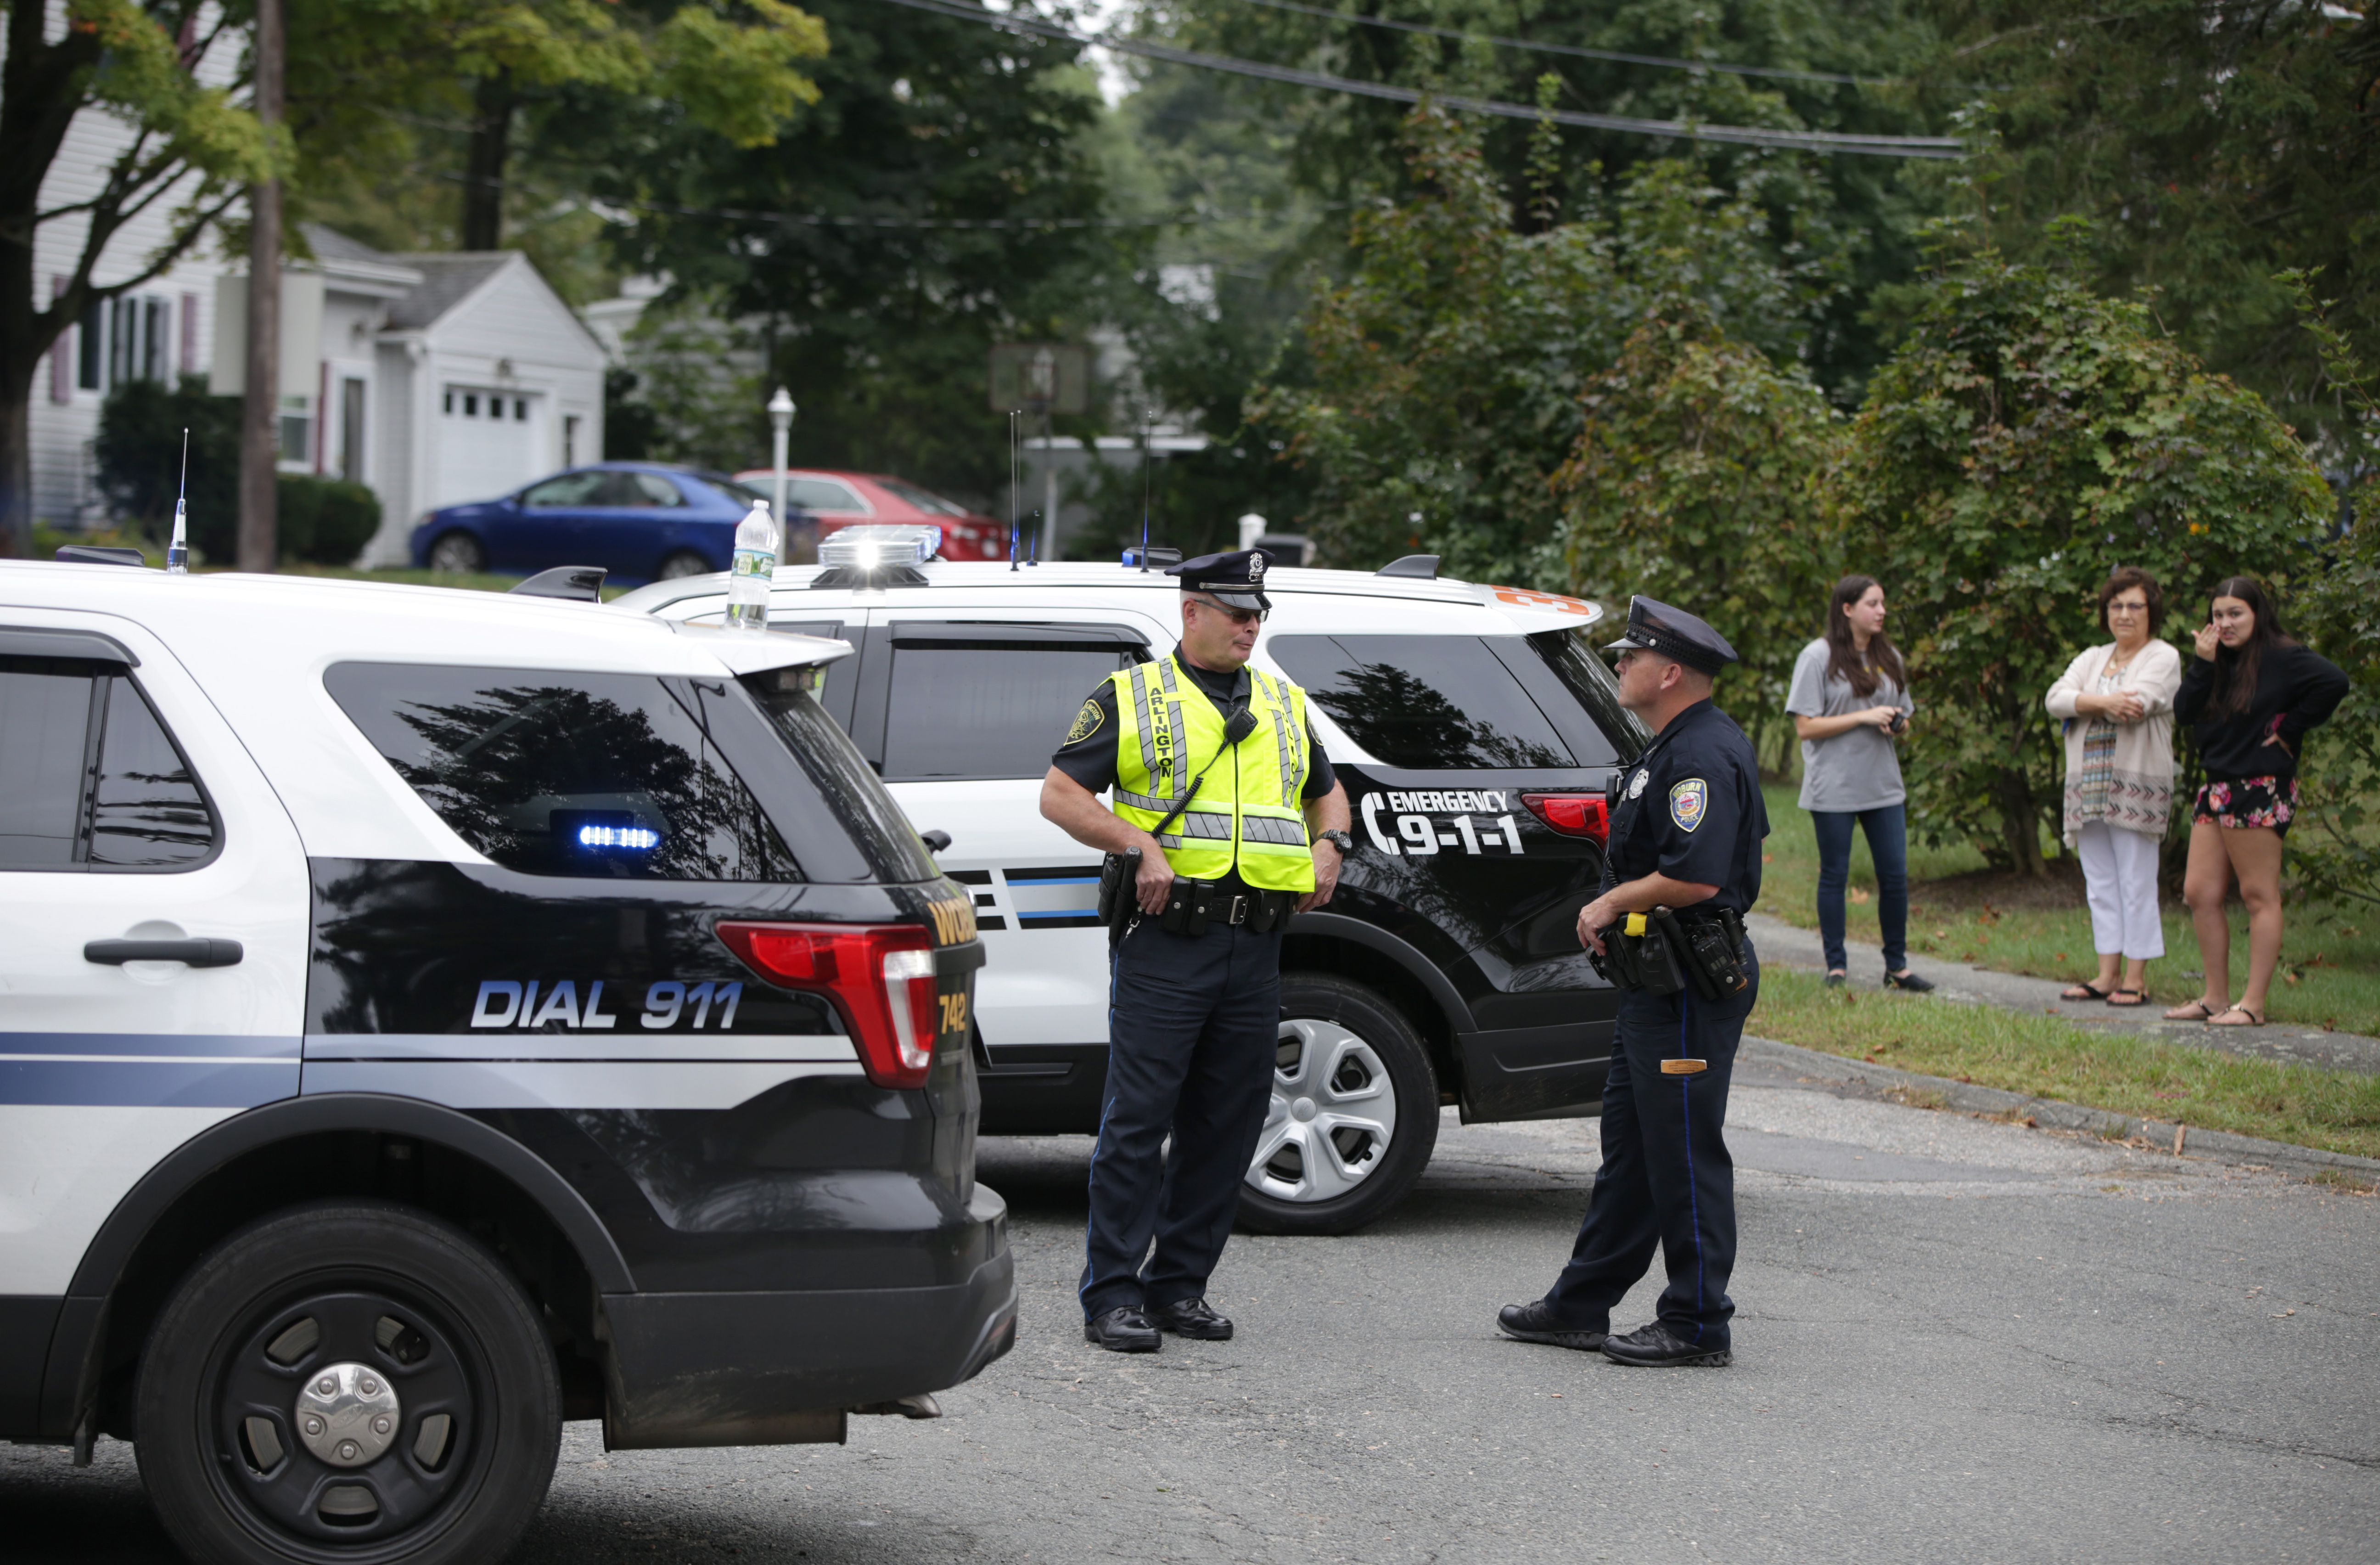 Husband and wife killed in plane crash in Woburn - The Boston Globe